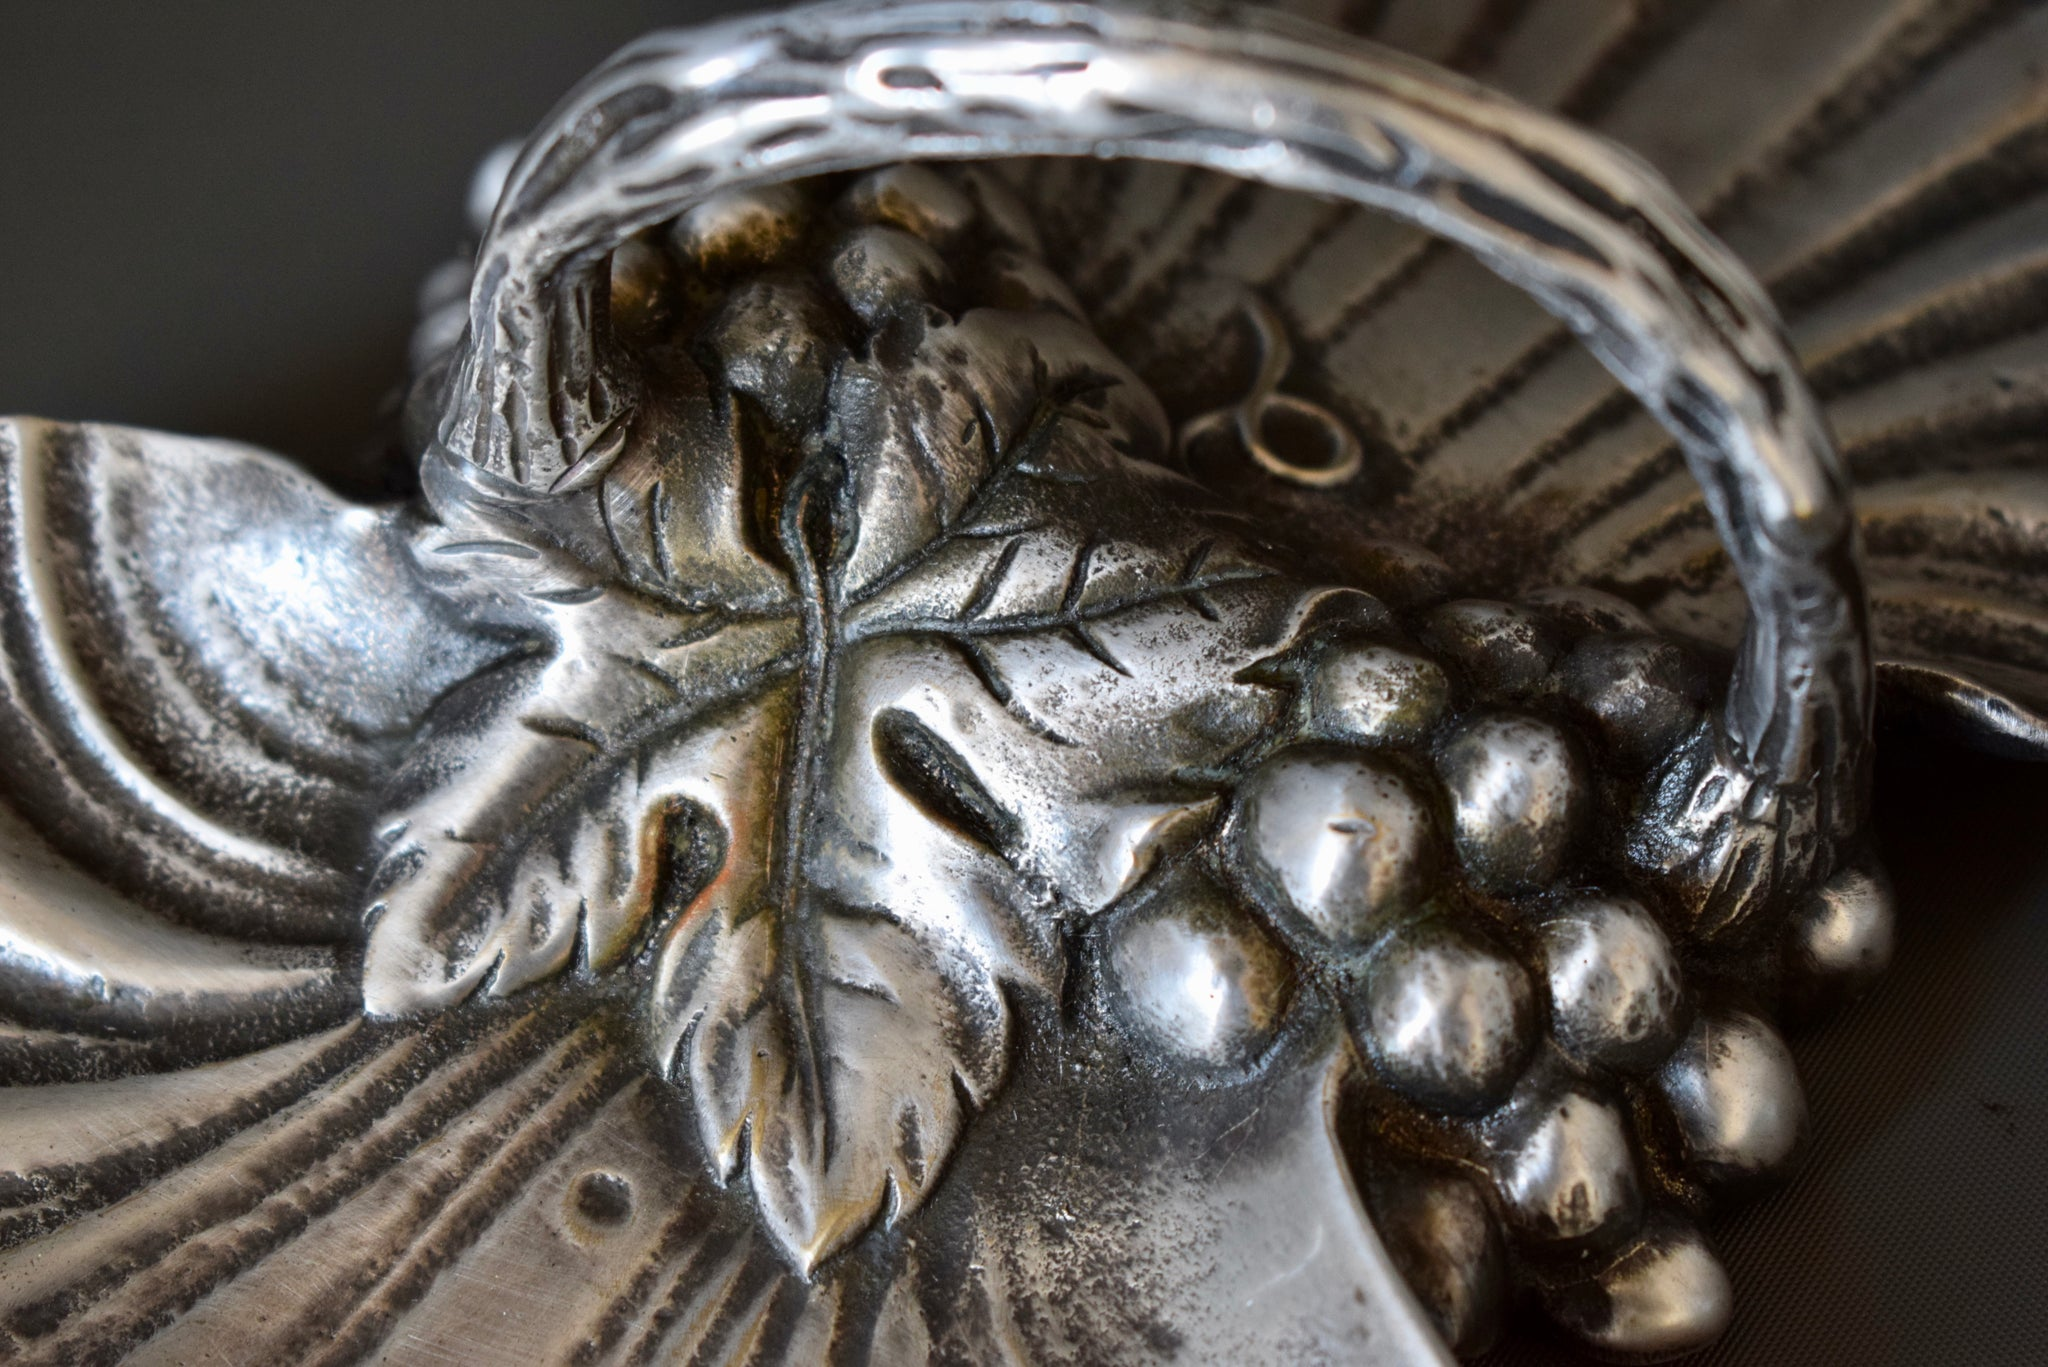 Art Deco Spanish Valenti Silvered Bronze Serving Dish with Handle Scallop Shaped Tray and Bunch of Grapes